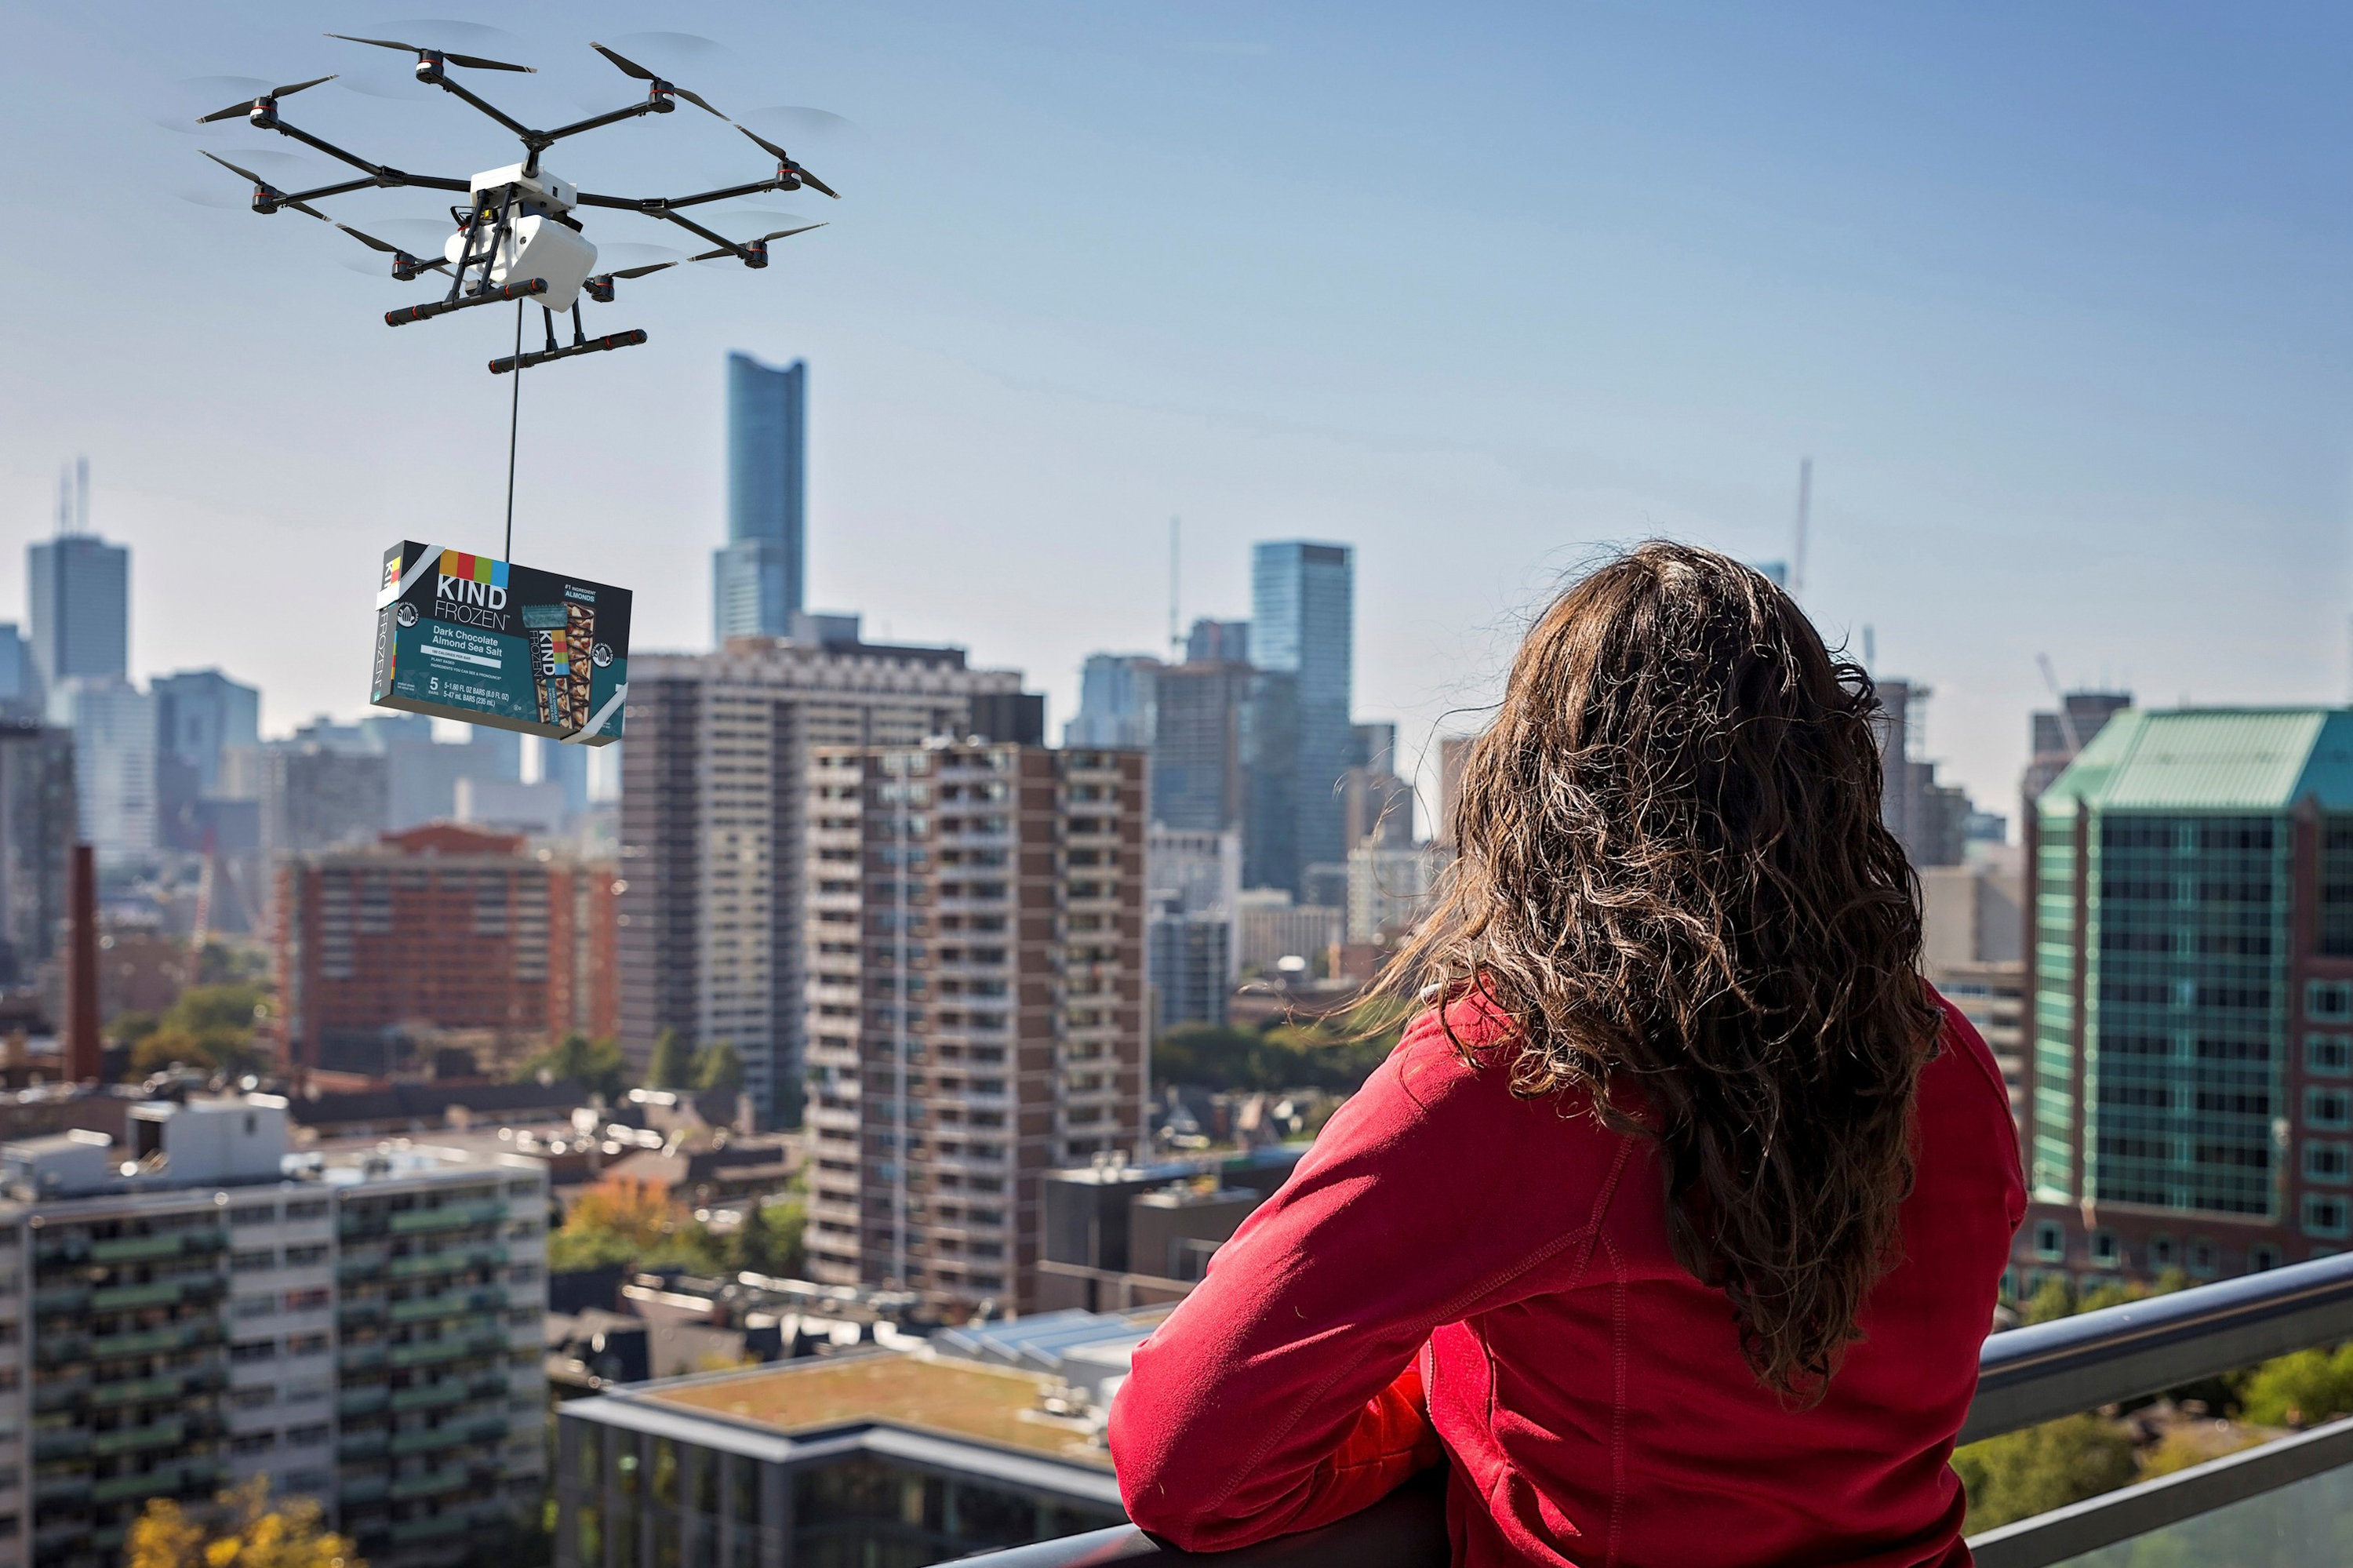 Kind pivots from in-person sampling to delivery by balloon, bird and drone